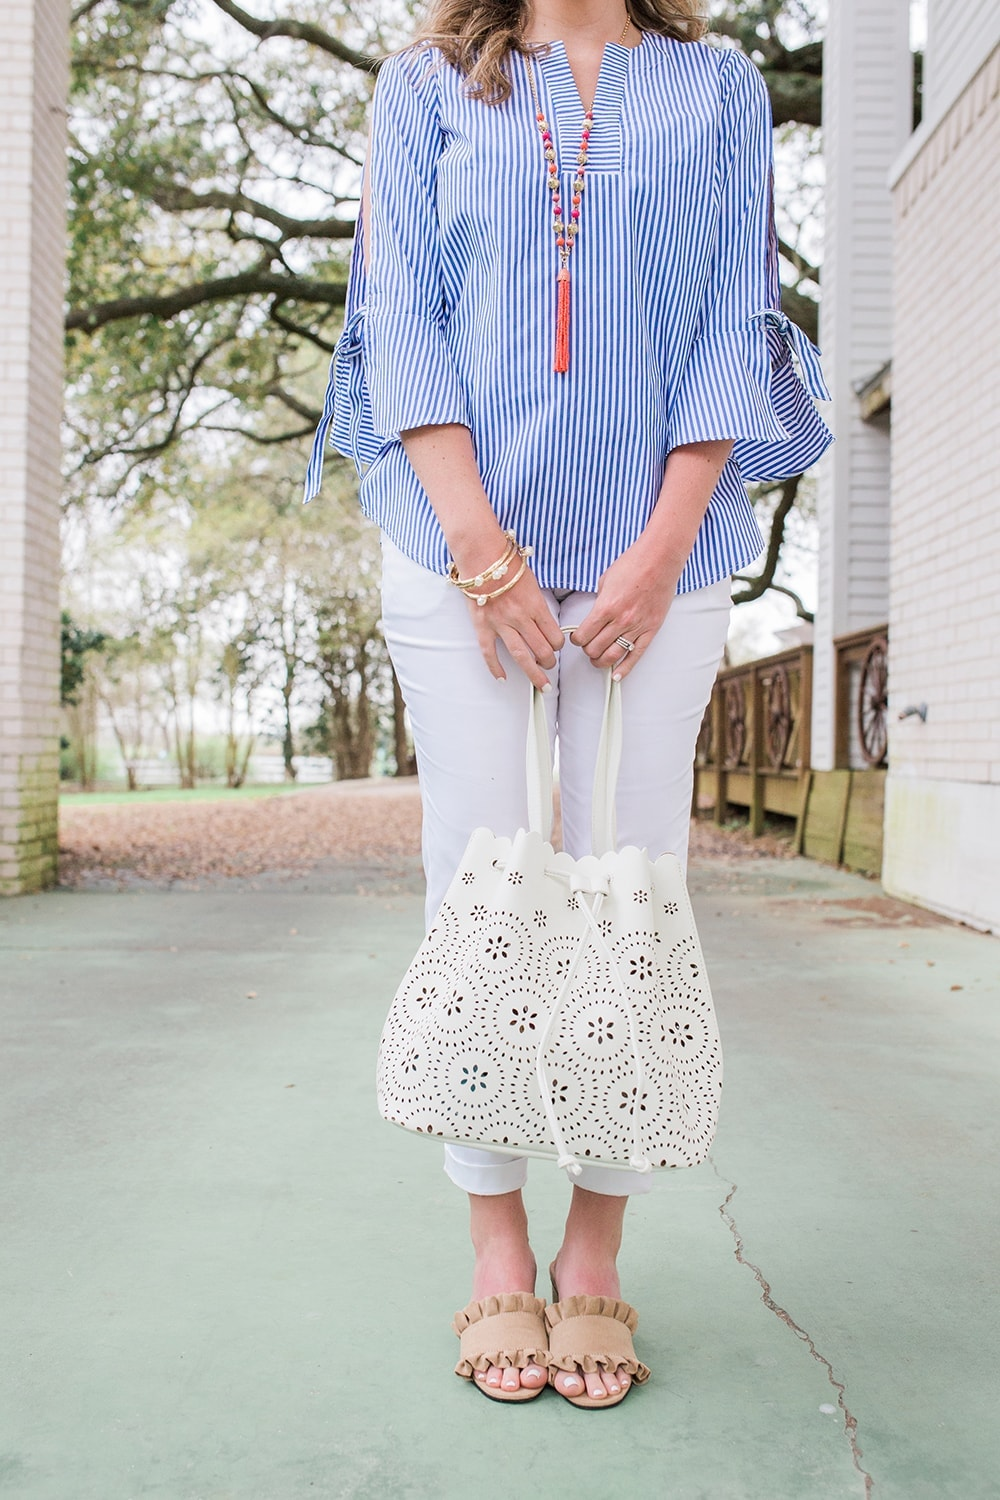 Houston blogger Meg O. on the Go shares spring outfit details - all from the Avon Modern Southern Belle Collection